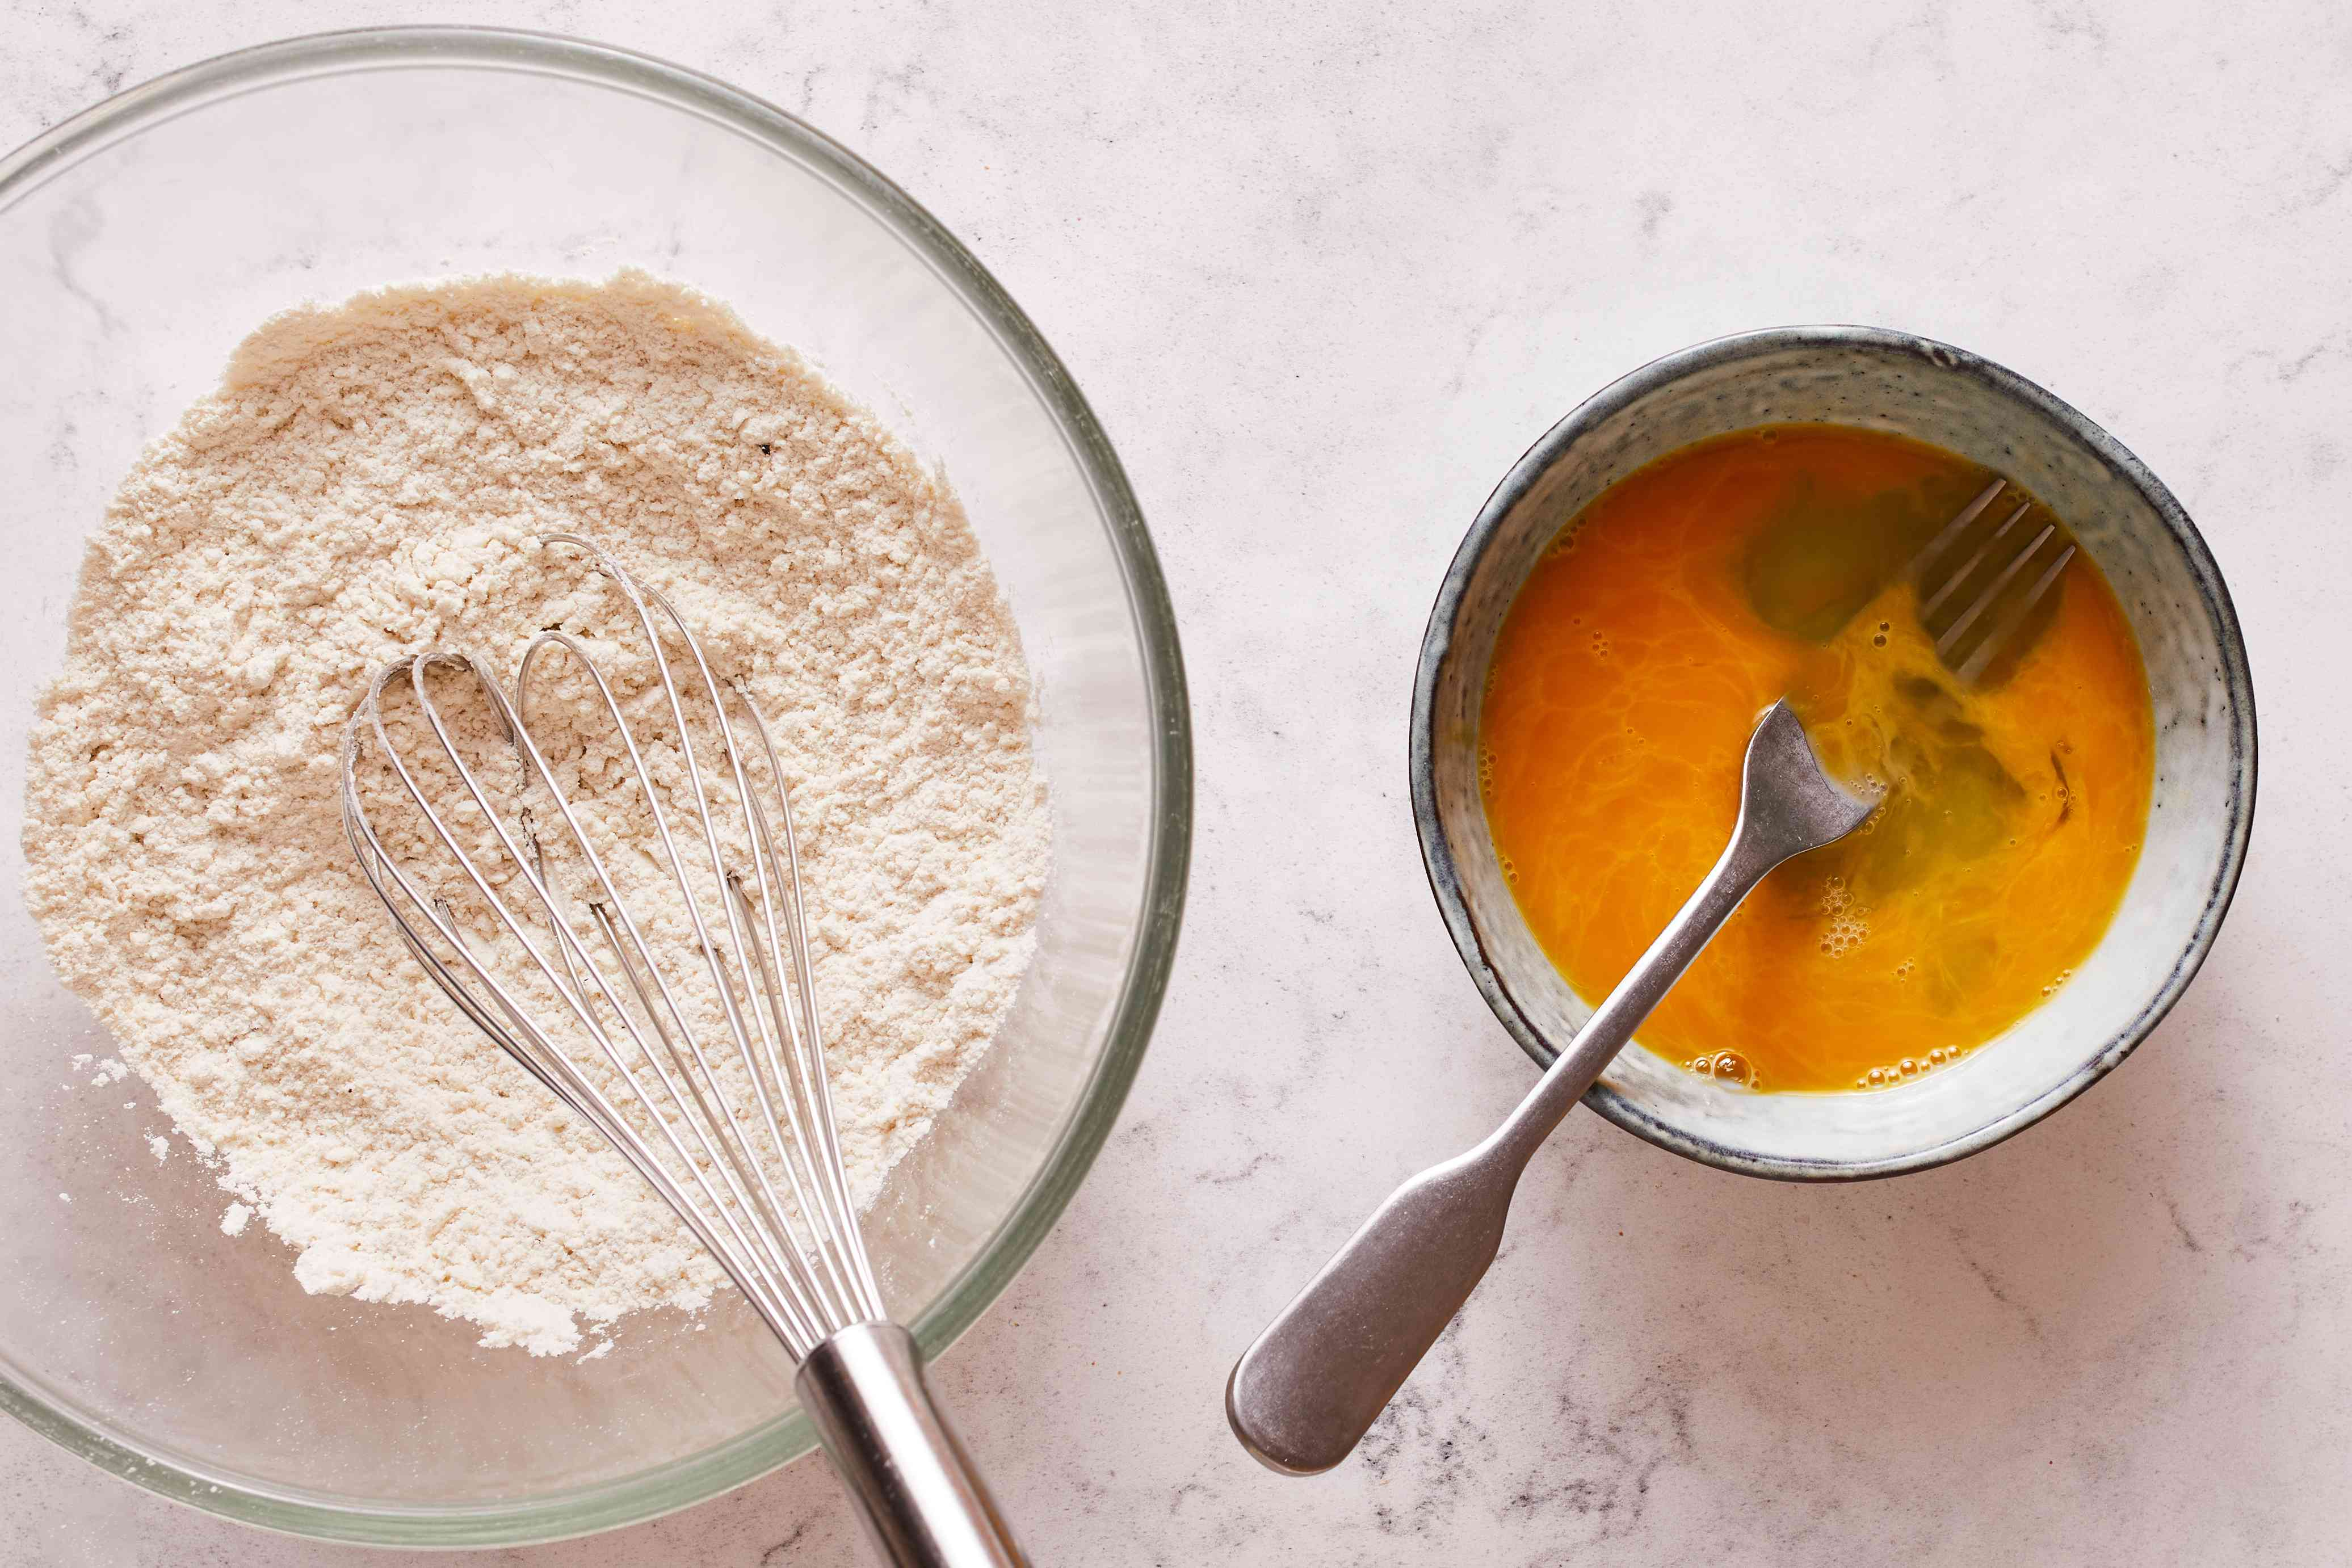 combine the flour, salt, baking powder, and pepper and mix, egg mixture in another bowl